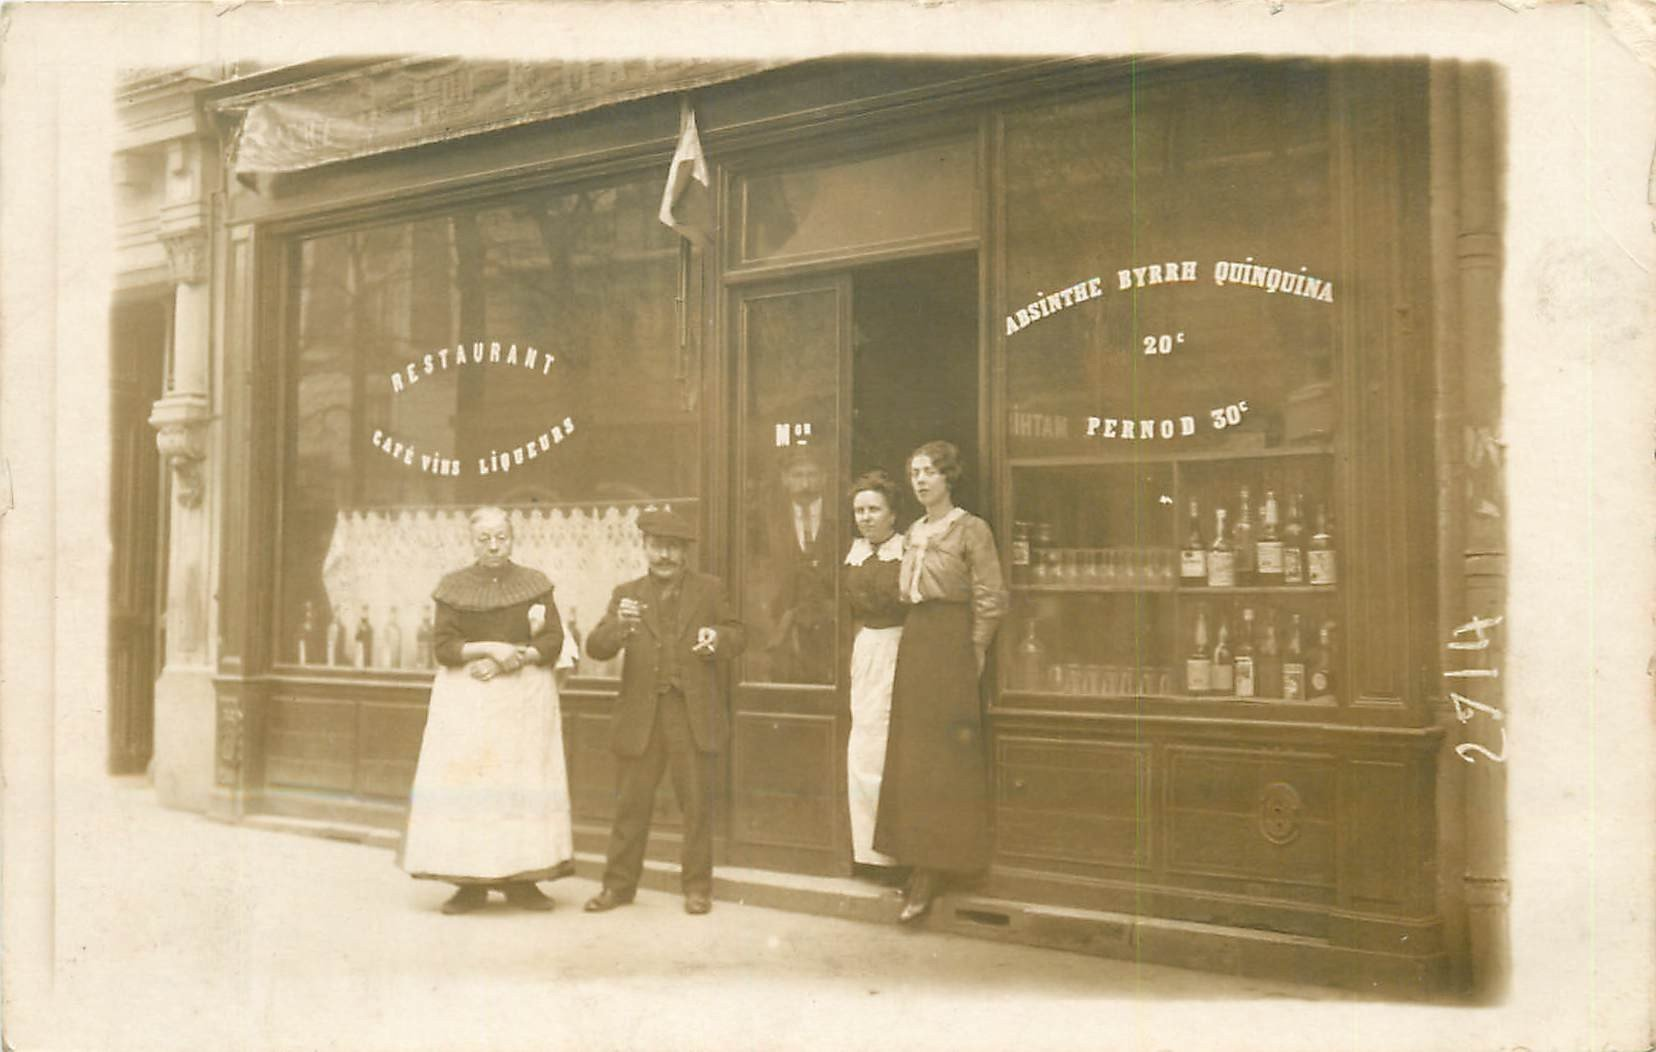 PARIS 11. Café Restaurant Mathieu 41 Rue Faidherbe. Rare Photo carte postale vers 1910